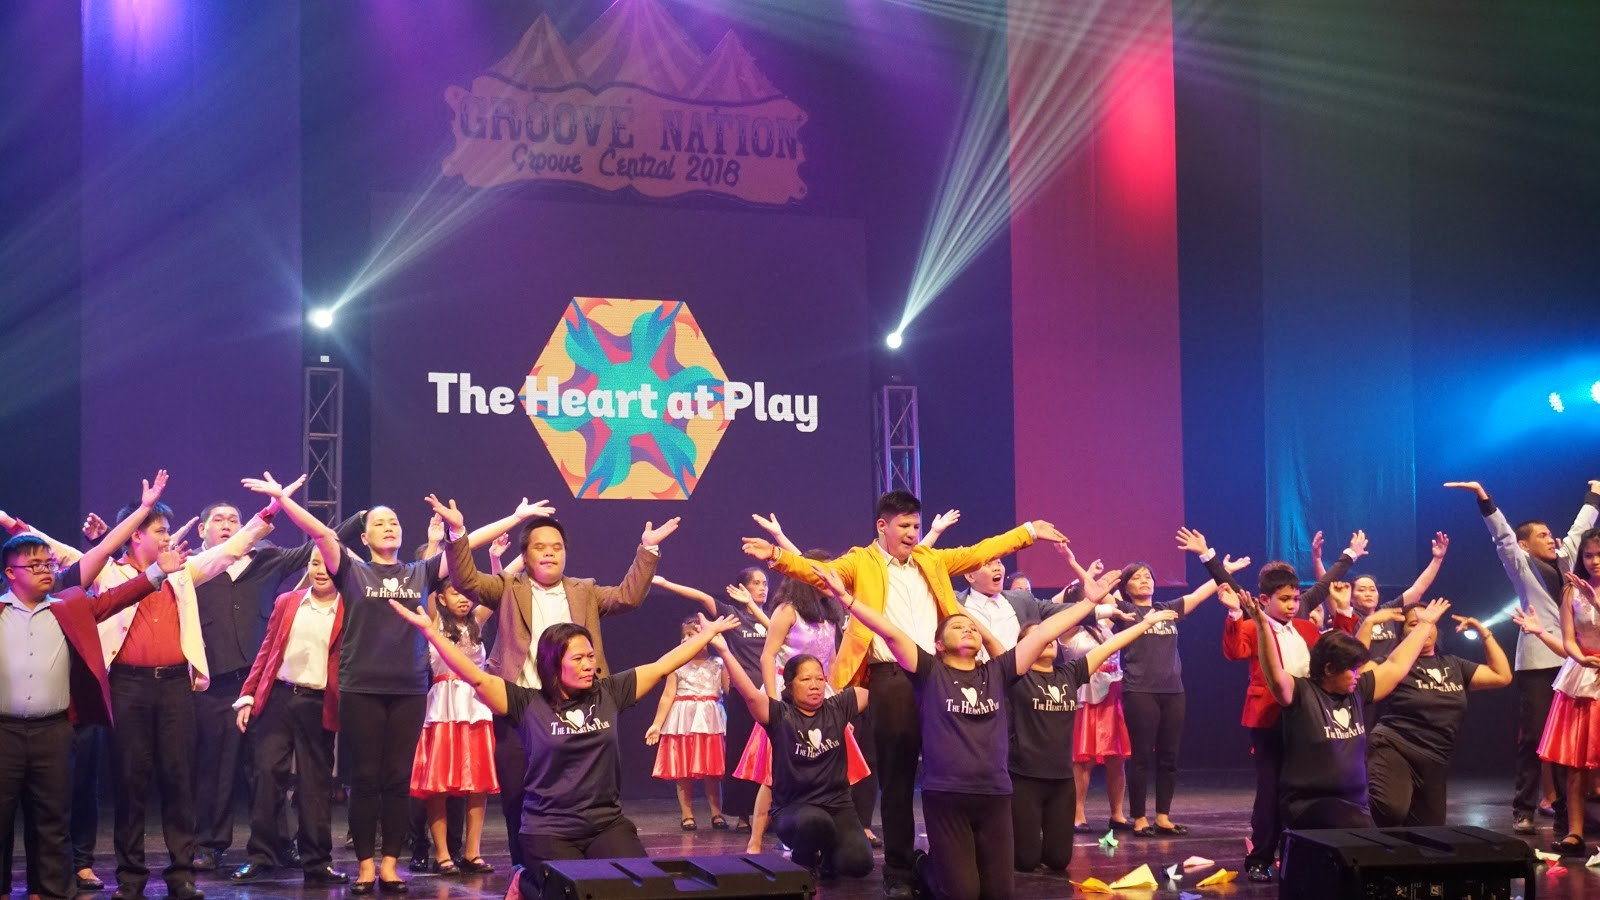 FINALE. Parents join their children at the 'The Heart at Play' Foundation performance. Photo by Angelica Yang/Rappler